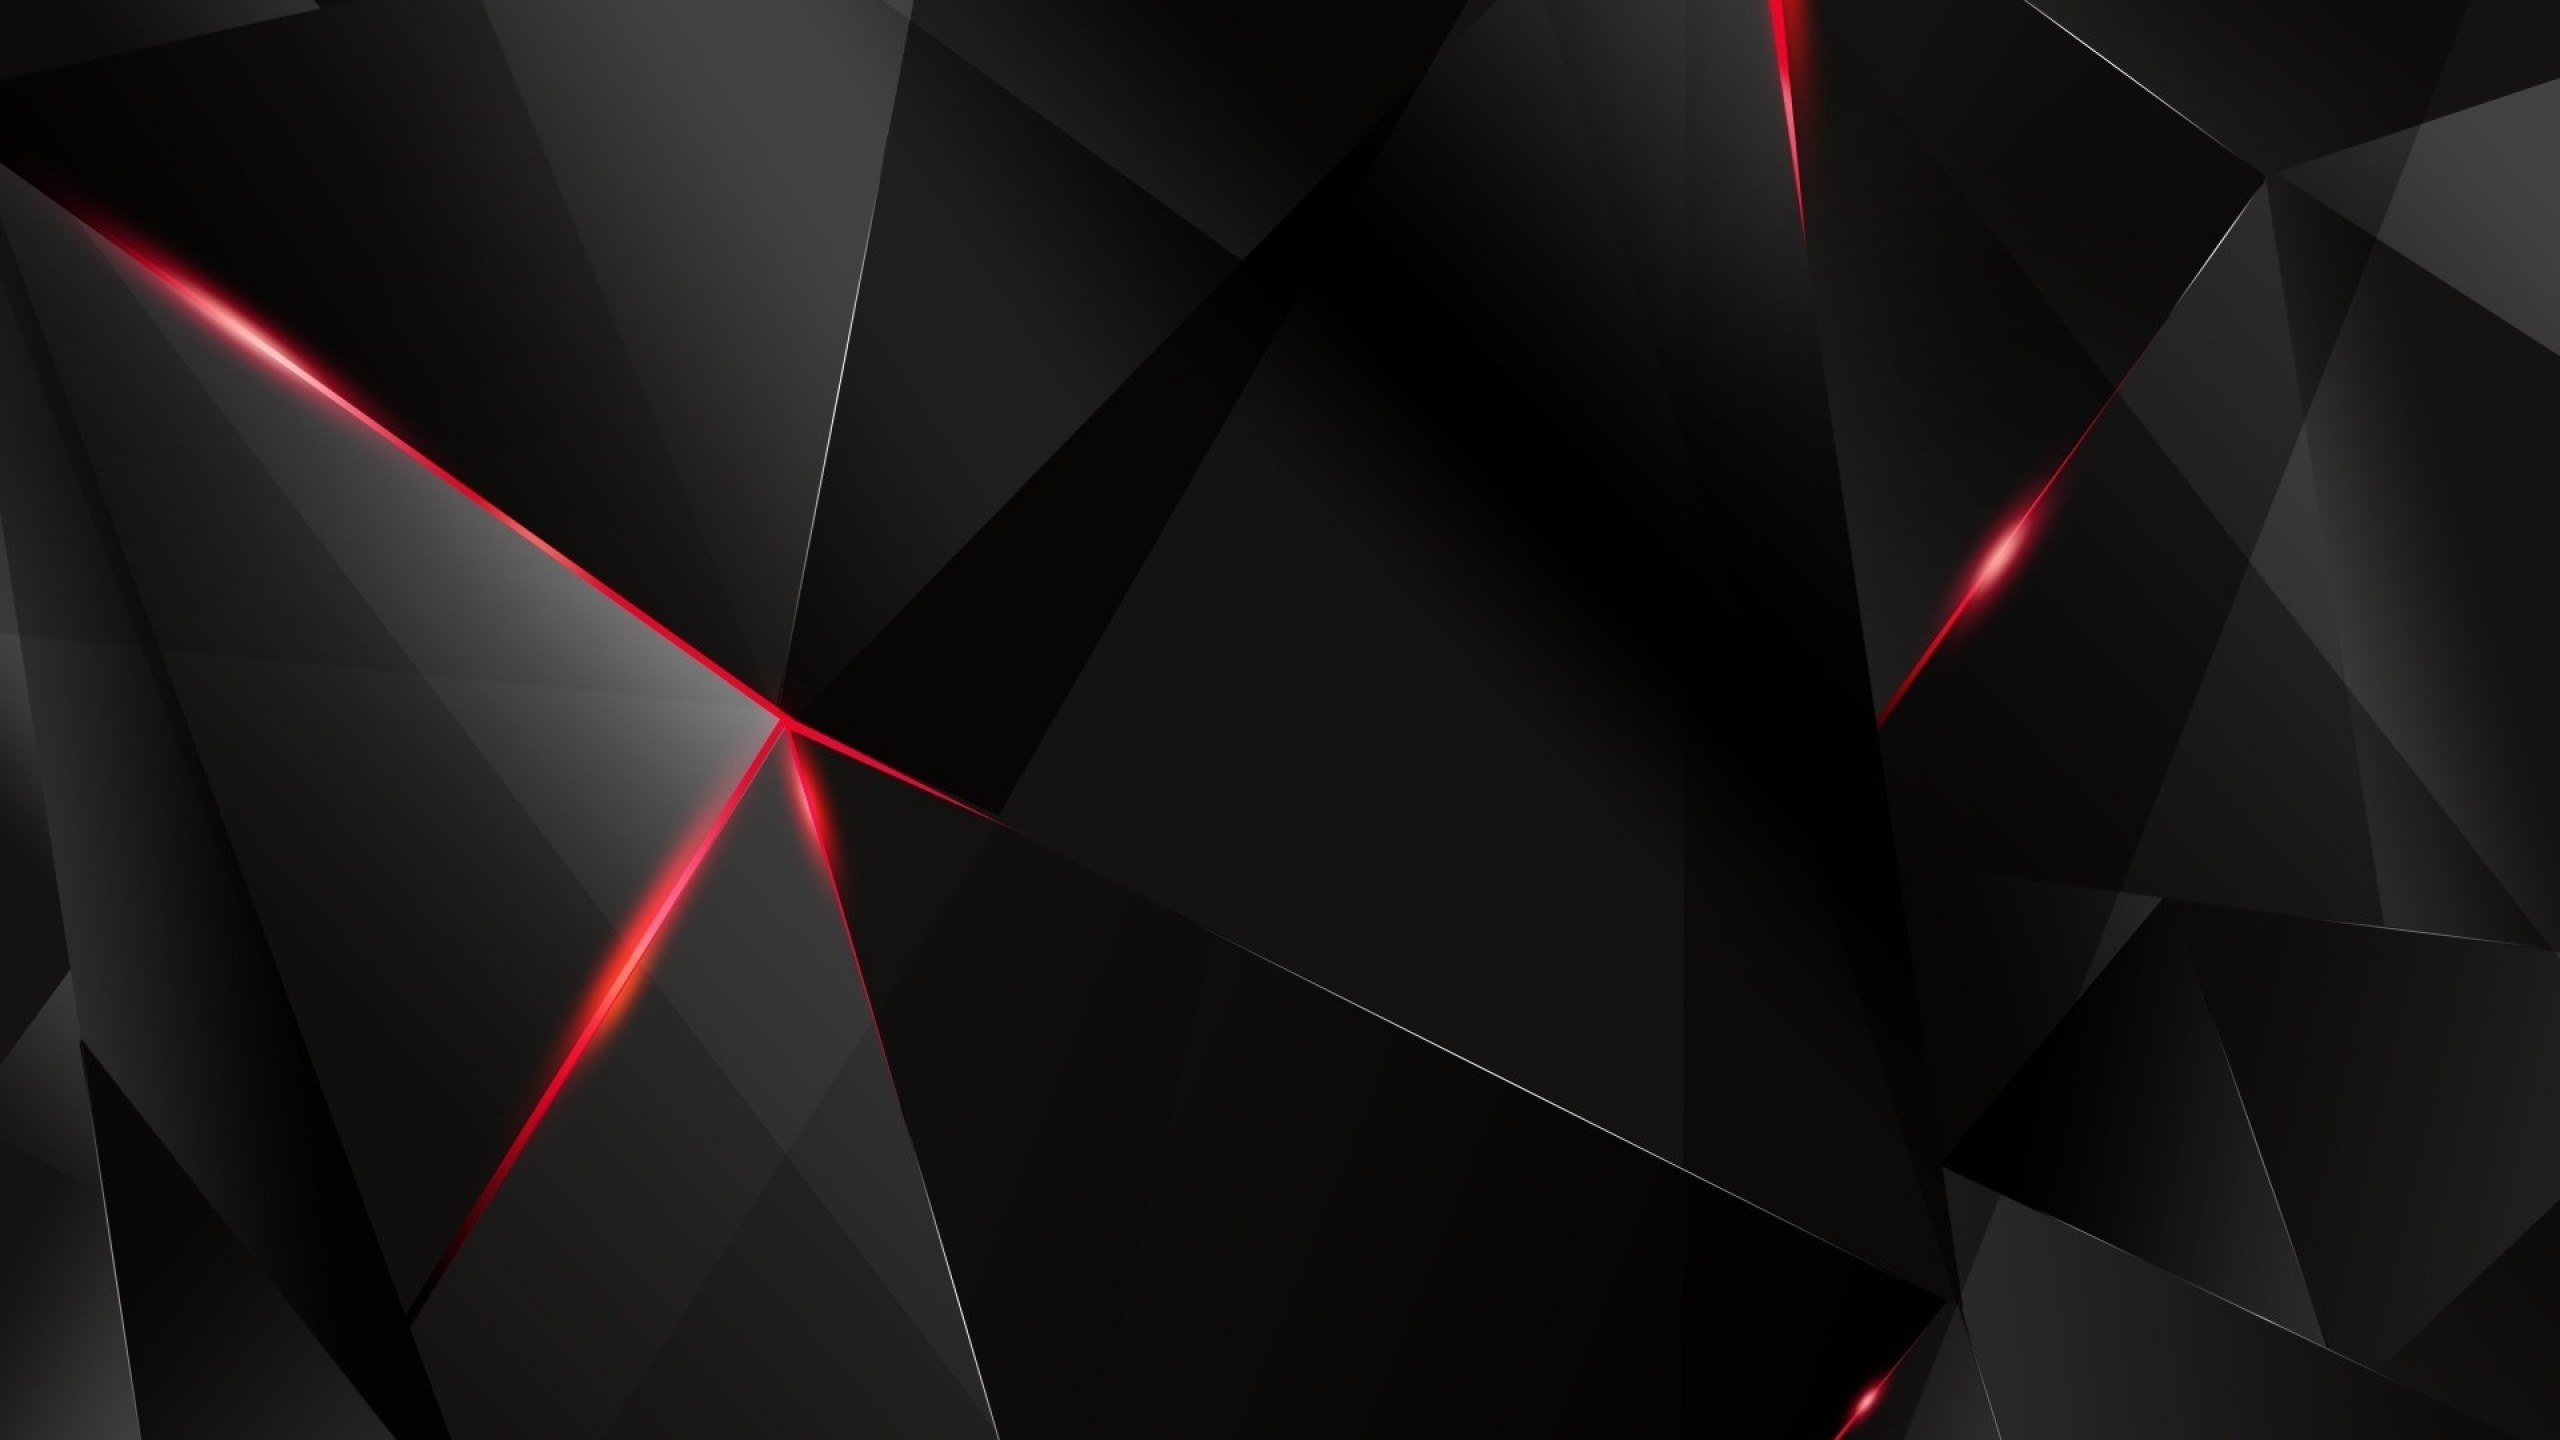 2560x1440 Black Wallpaper 84 Images